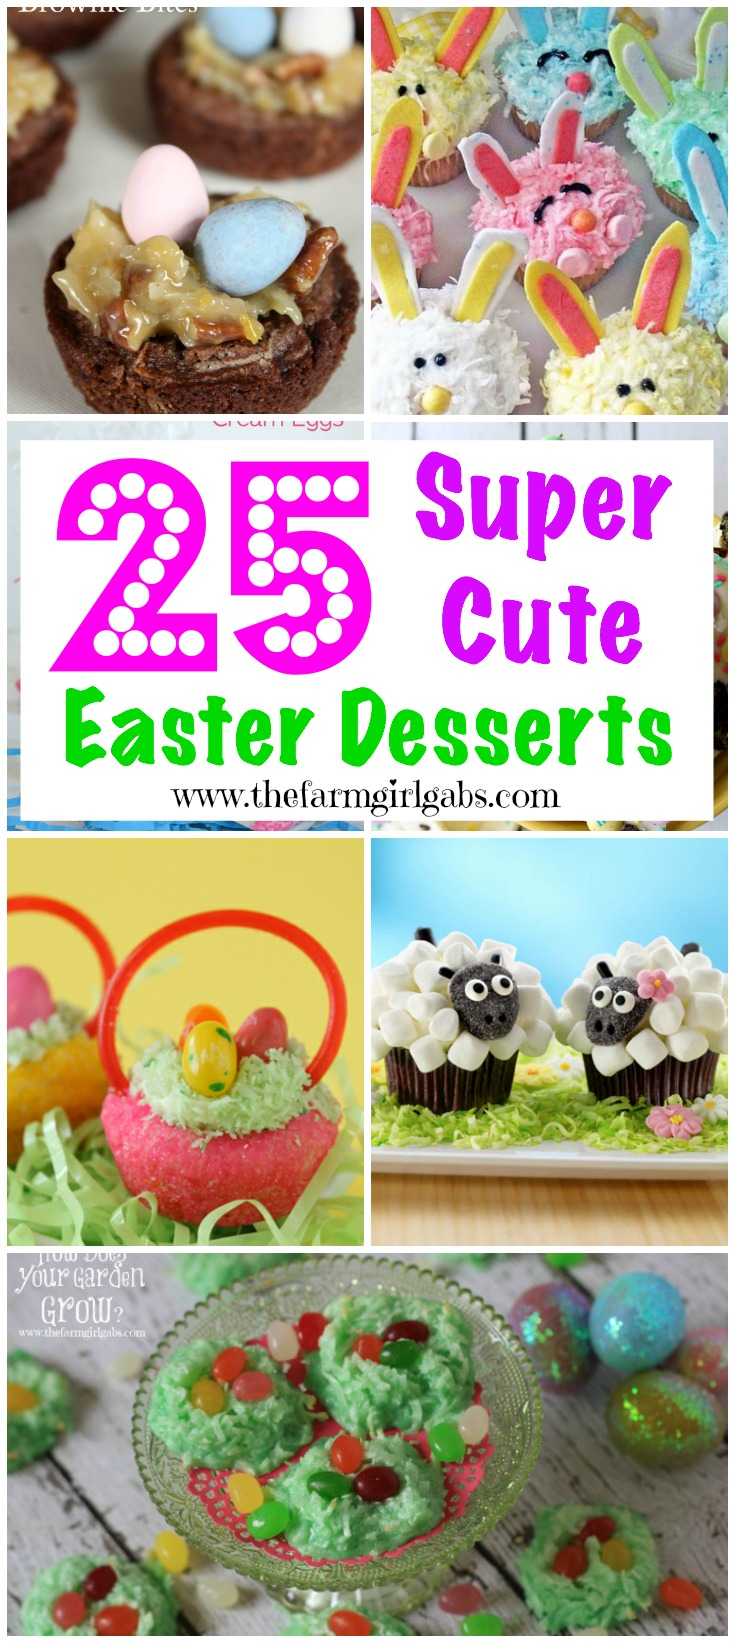 Here is a round up of 25 Super Cute Easter Desserts you  can make for your Easter Celebration.